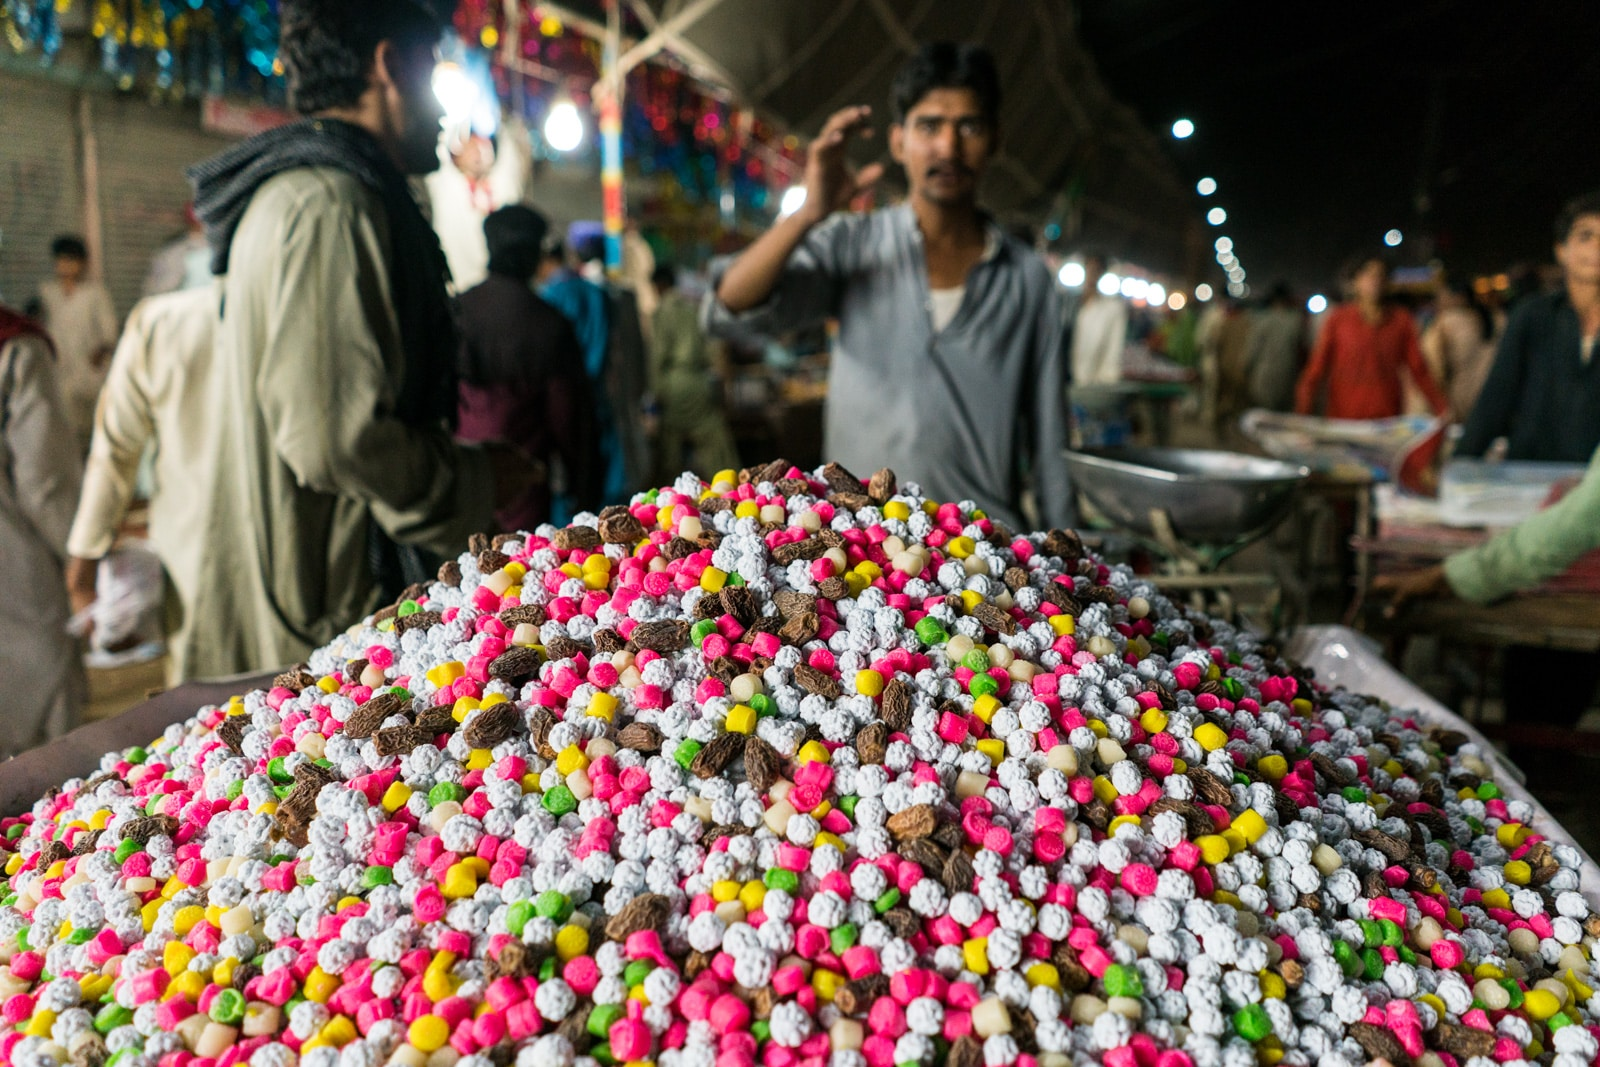 The Urs of Lal Shahbaz Qalandar in Sehwan, Pakistan - Cart of sweets for handouts in the shrine - Lost With Purpose travel blog